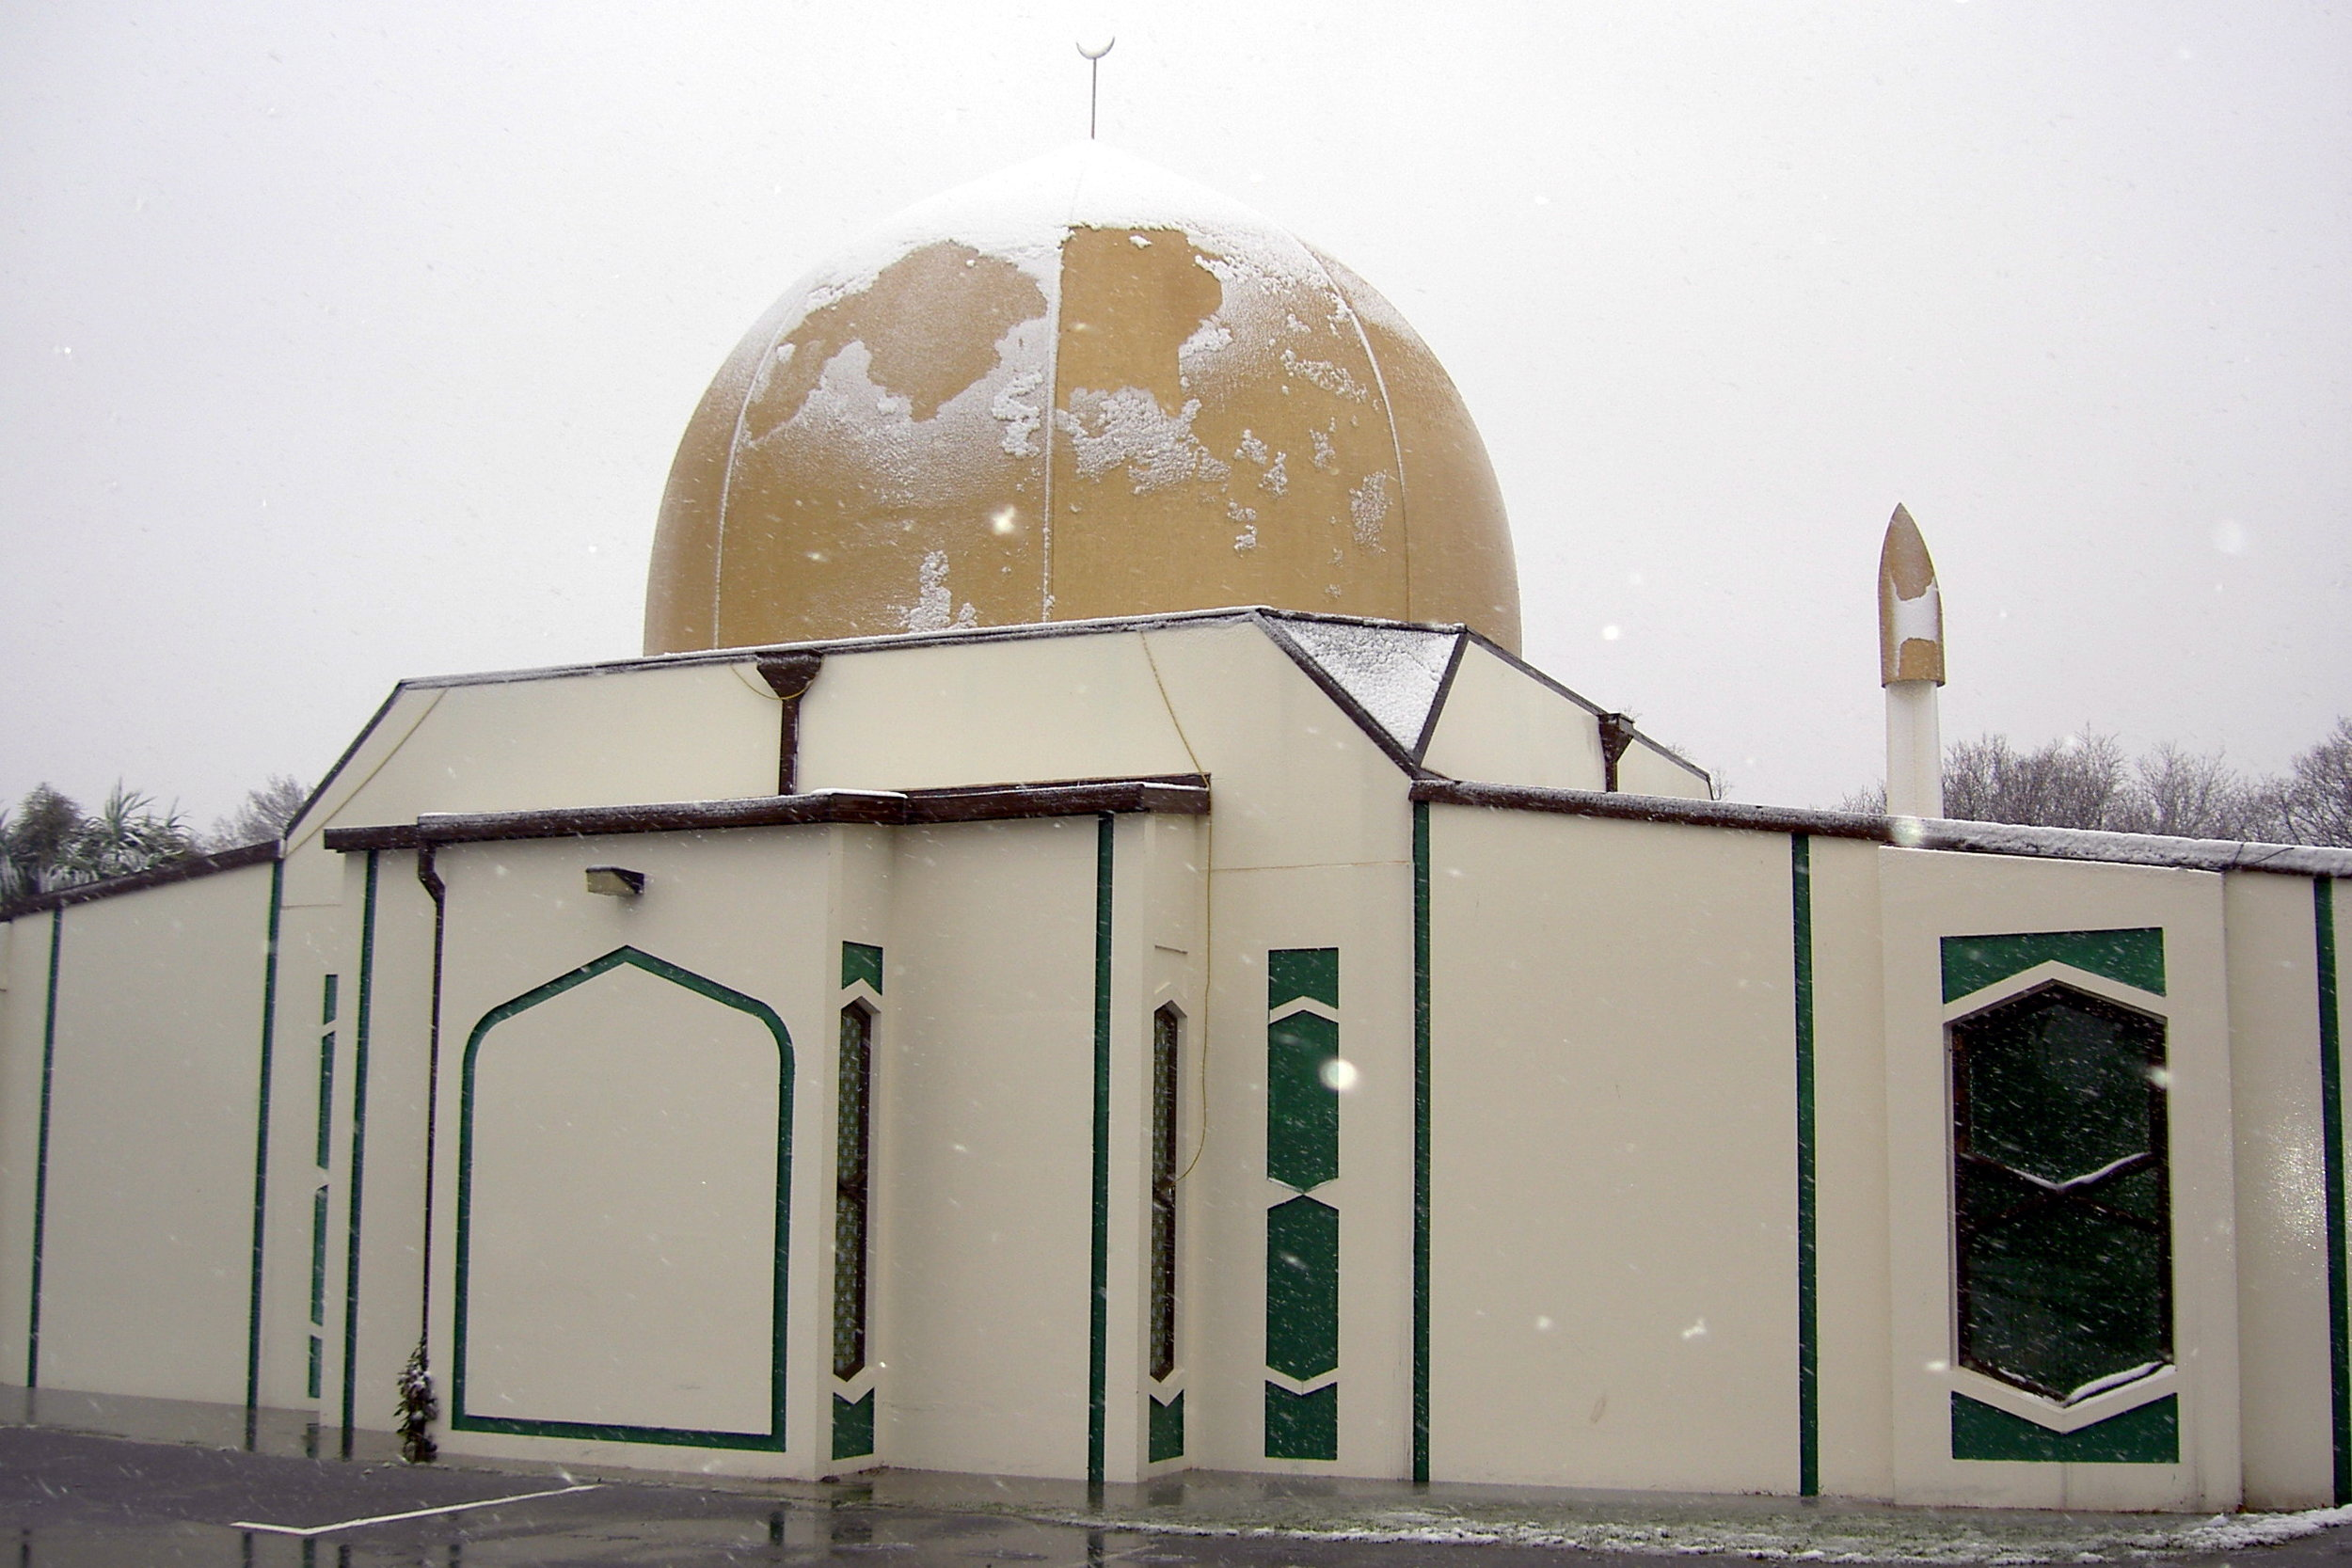 Al Noor Mosque in Christchurch.